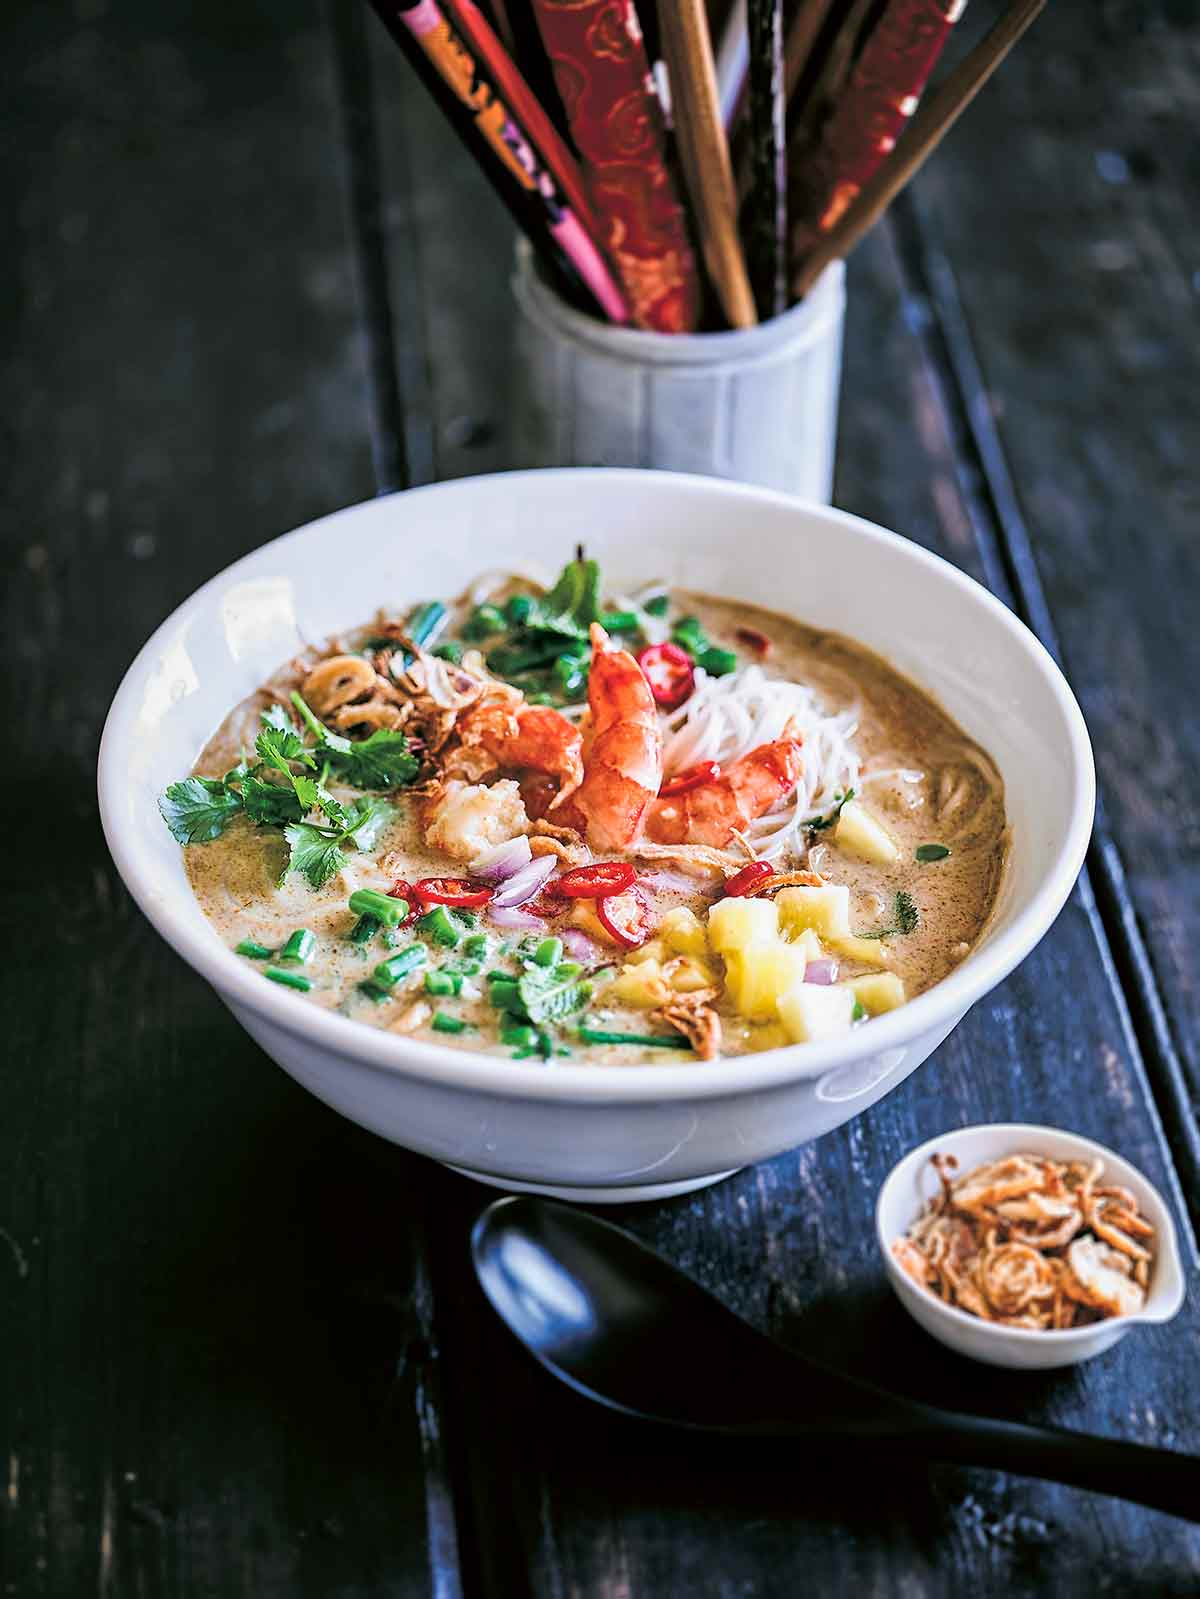 A white bowl of shrimp laksa soup with a small bowl of crispy fried shallots, a spoon, and a container of chopsticks on the side.